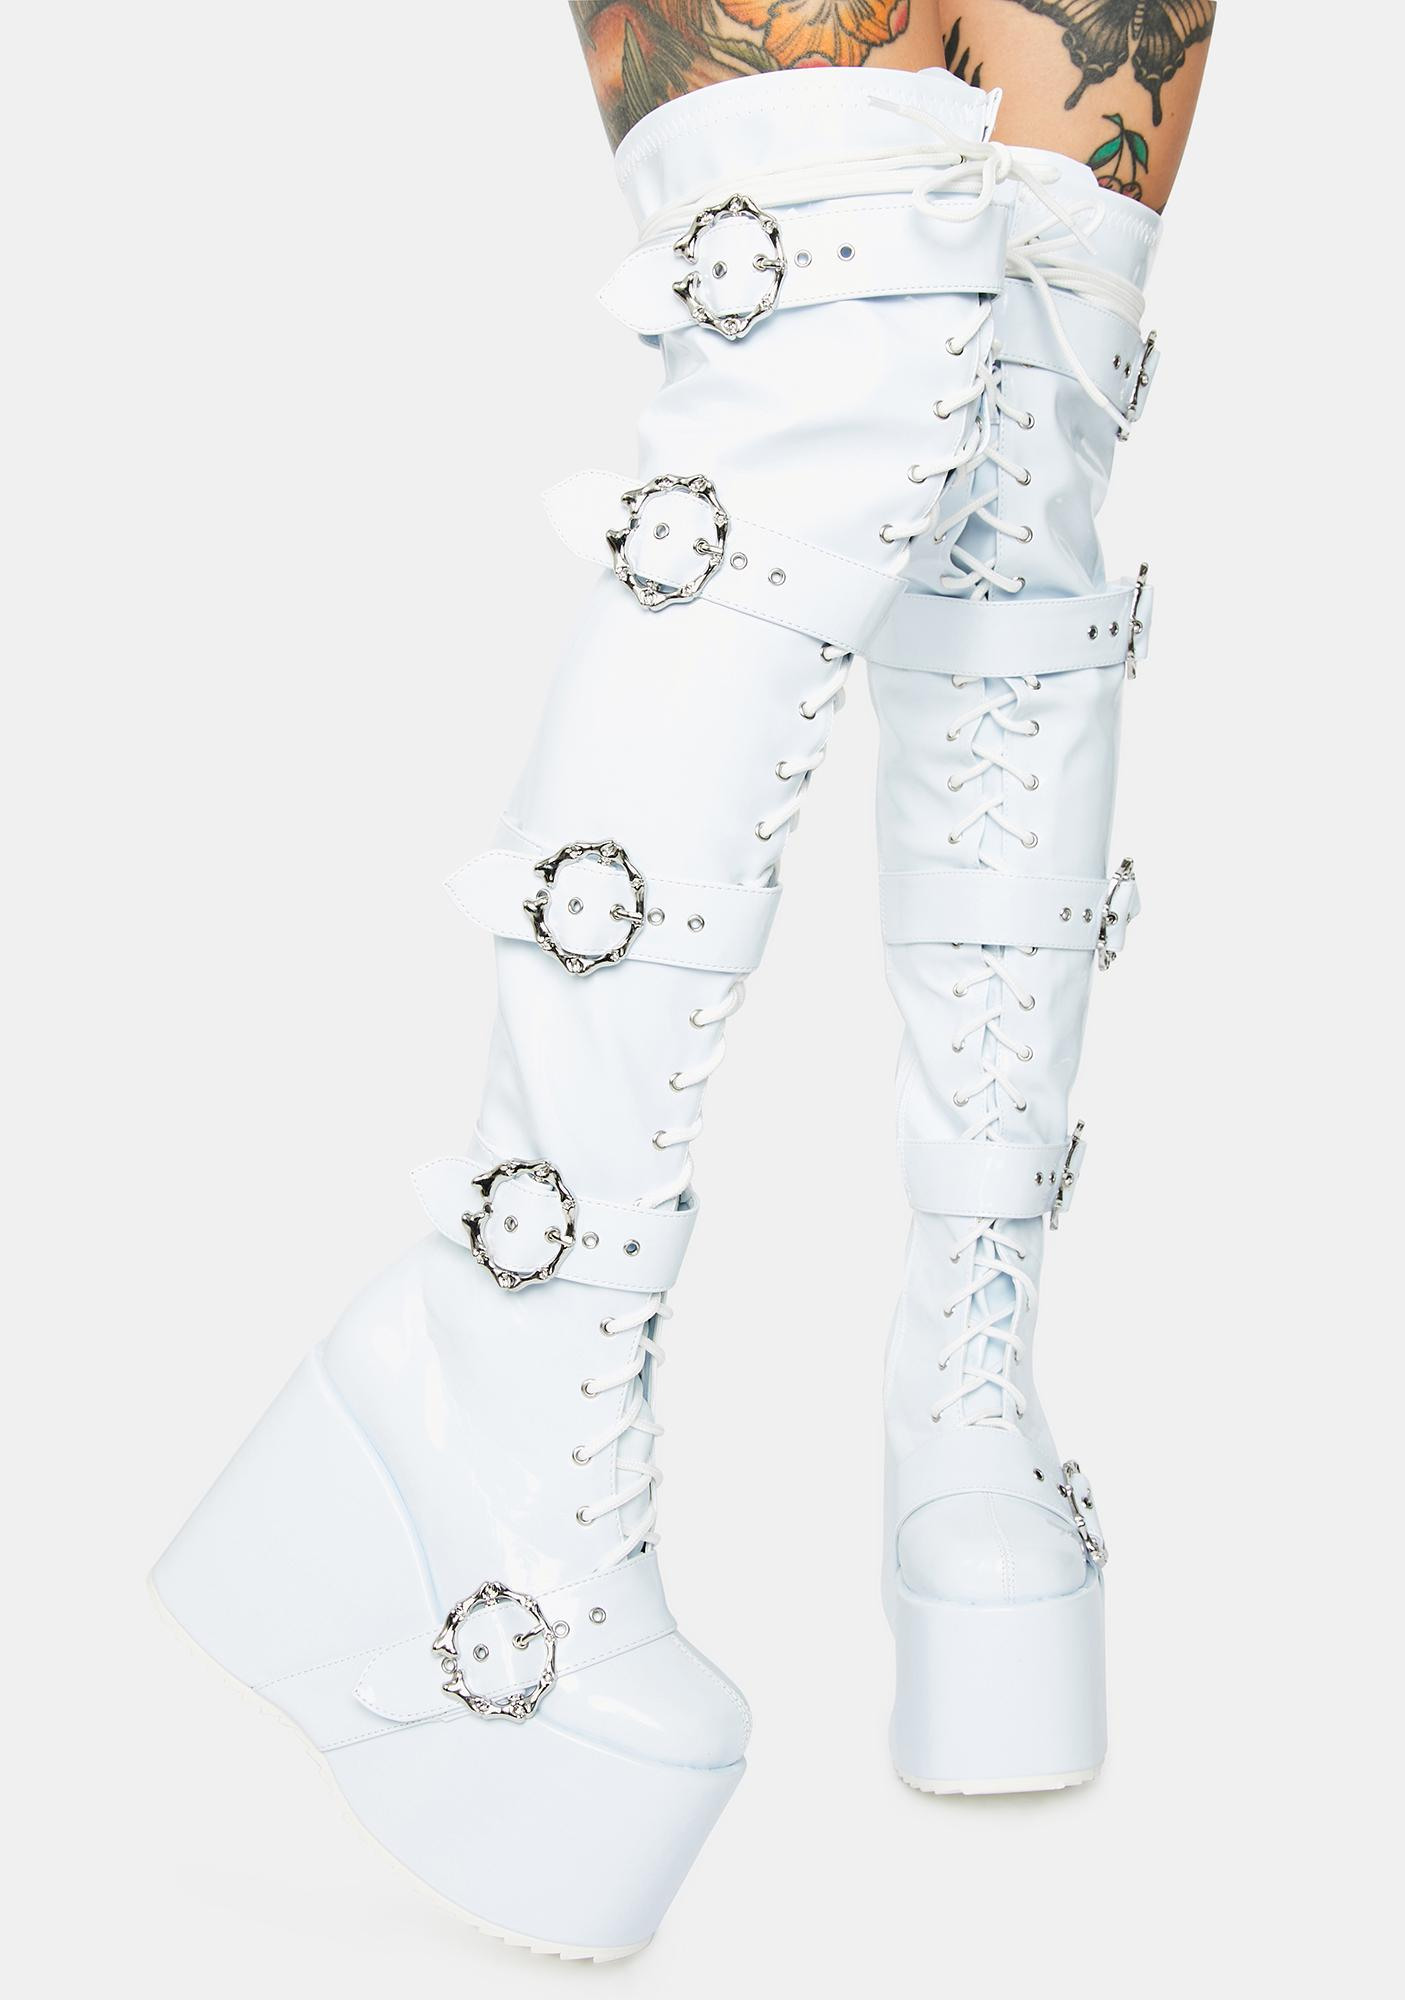 Ellie Shoes Pure Chance At Romance Knee High Boots